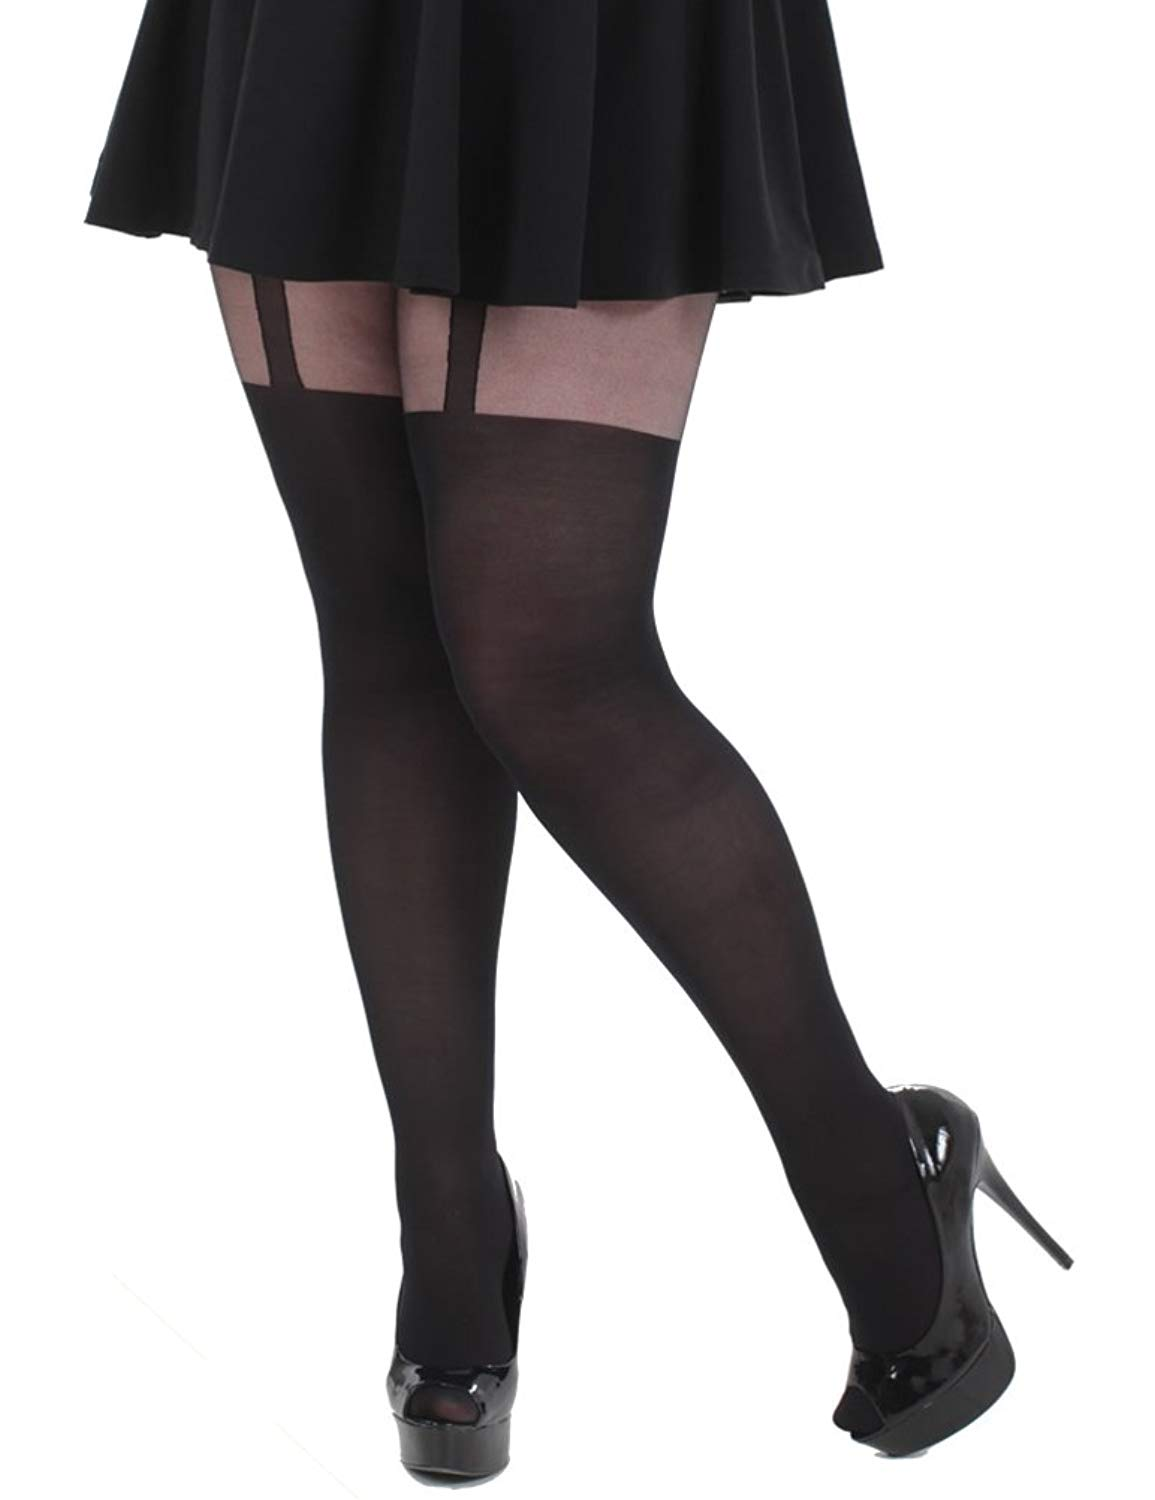 8ce6333aaae Get Quotations · Plus Size Mock Suspender Tights XL to 3x